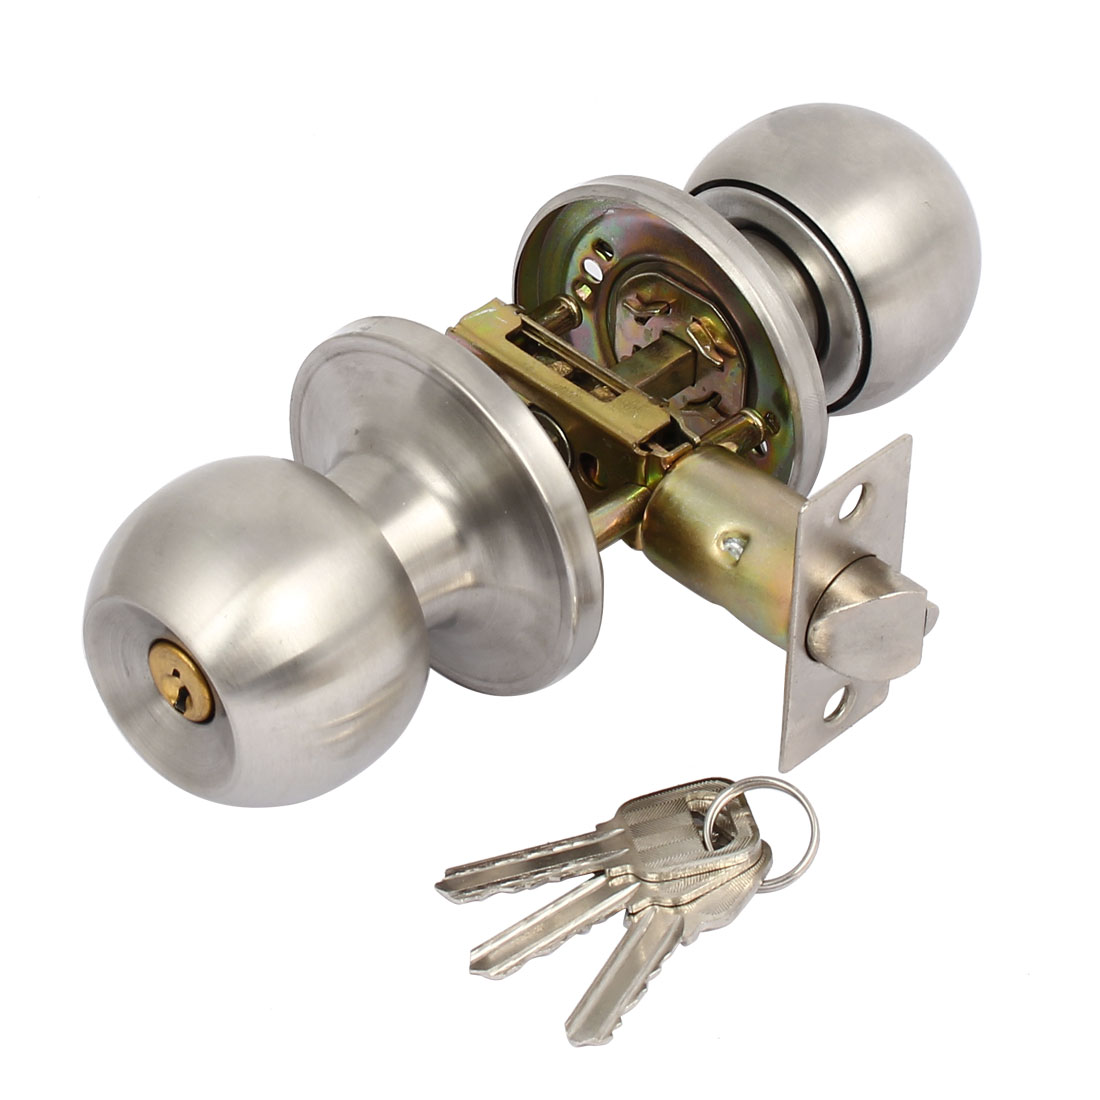 Home Bathroom Metal Round Knob Lock Lockset for 50mm-70mm Thickness Door